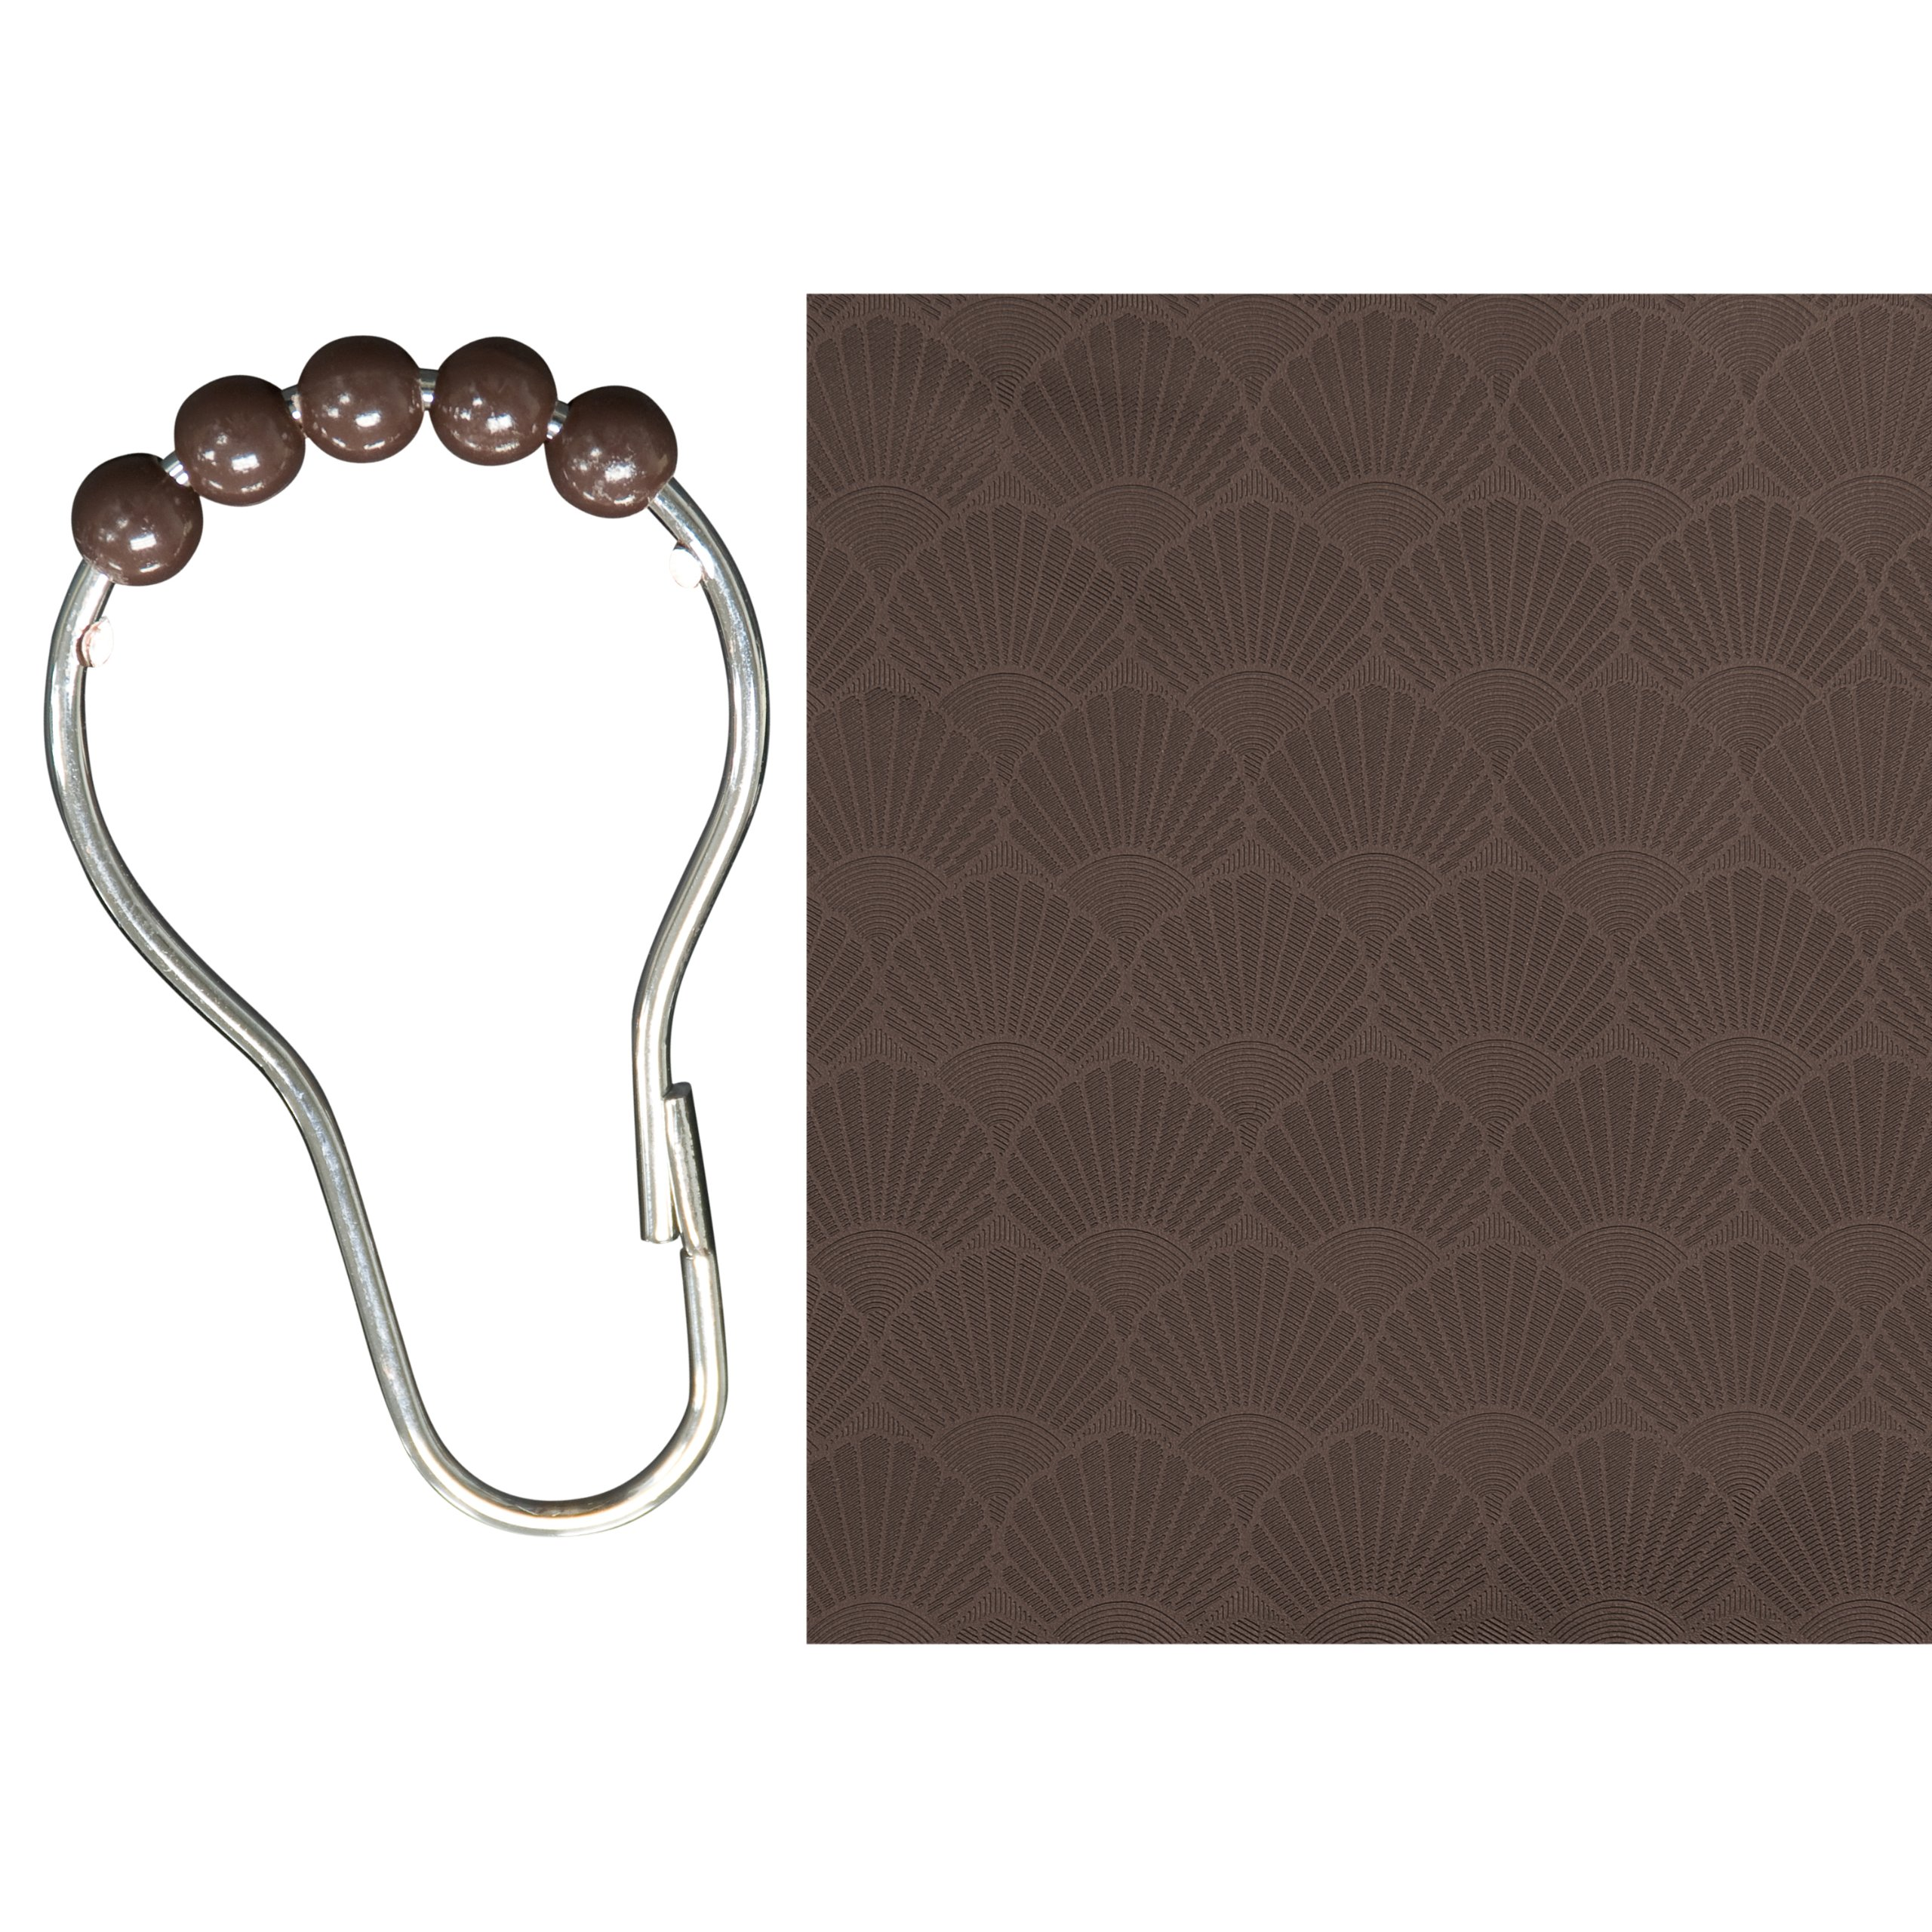 Kenney Vinyl Shower Liner with 12 Beaded Roller Rings, 70 by 72-Inch, Chocolate